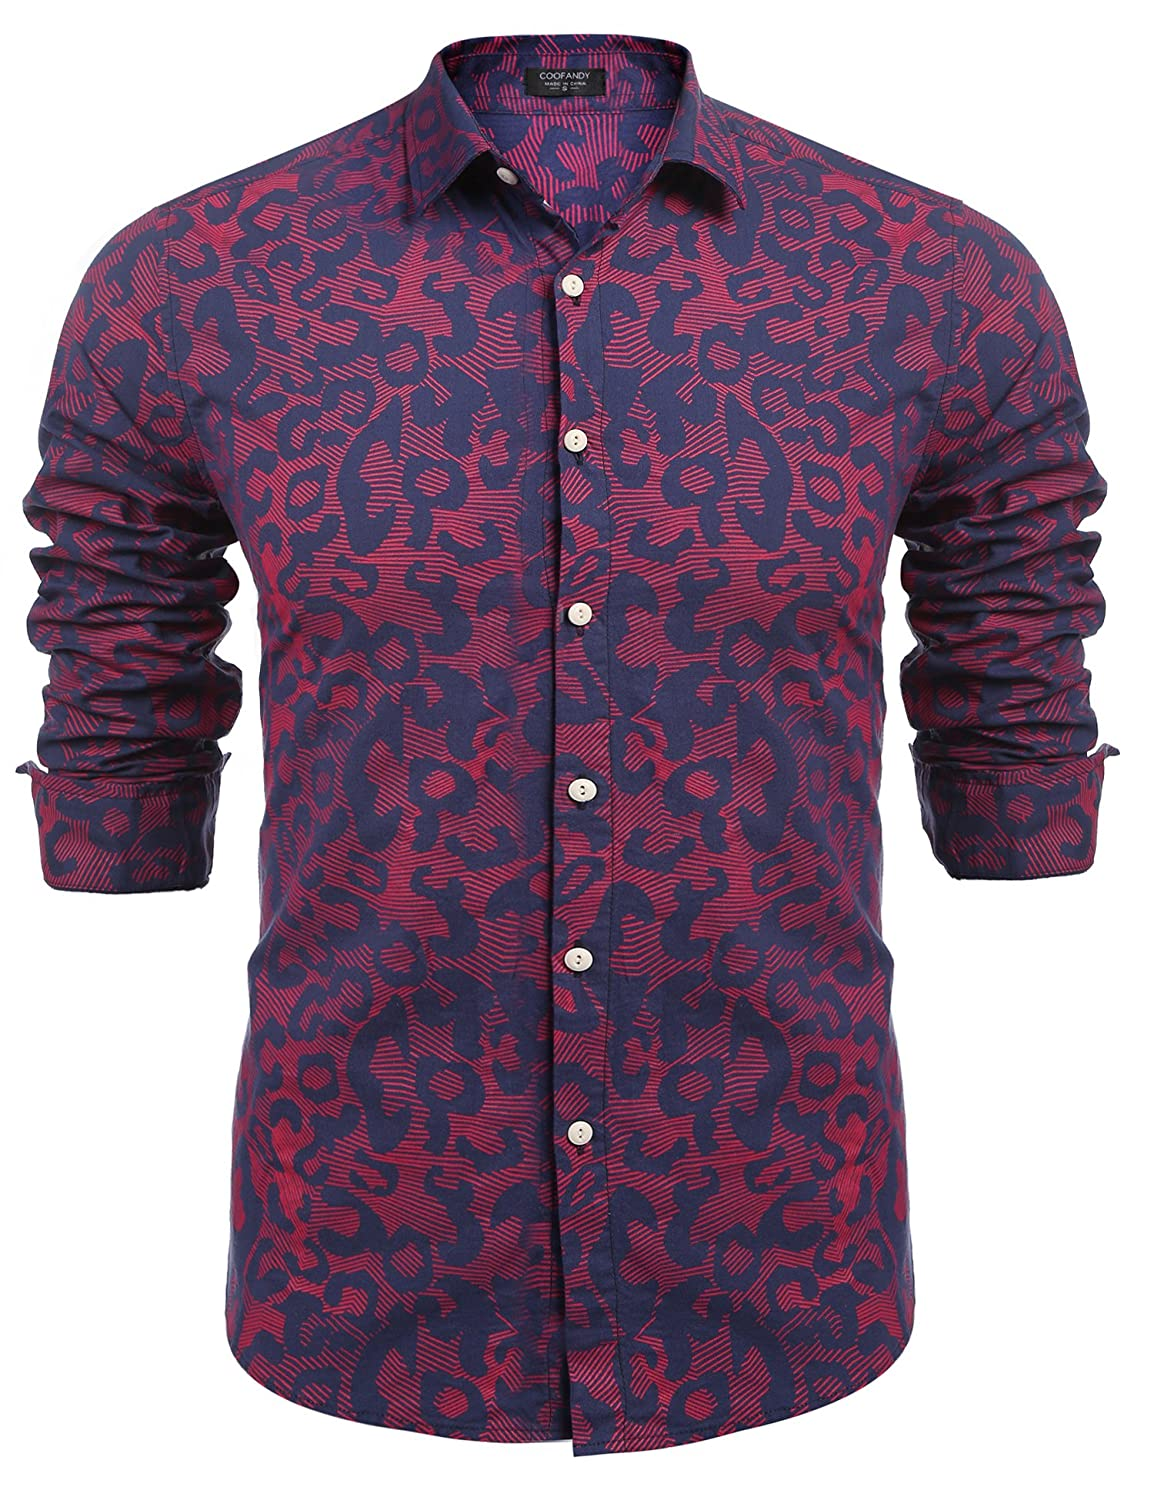 087a781b COOFANDY Men's Floral Print Casual Long Sleeve Shirts Slim Fit Button Down  Dress Shirt at Amazon Men's Clothing store: